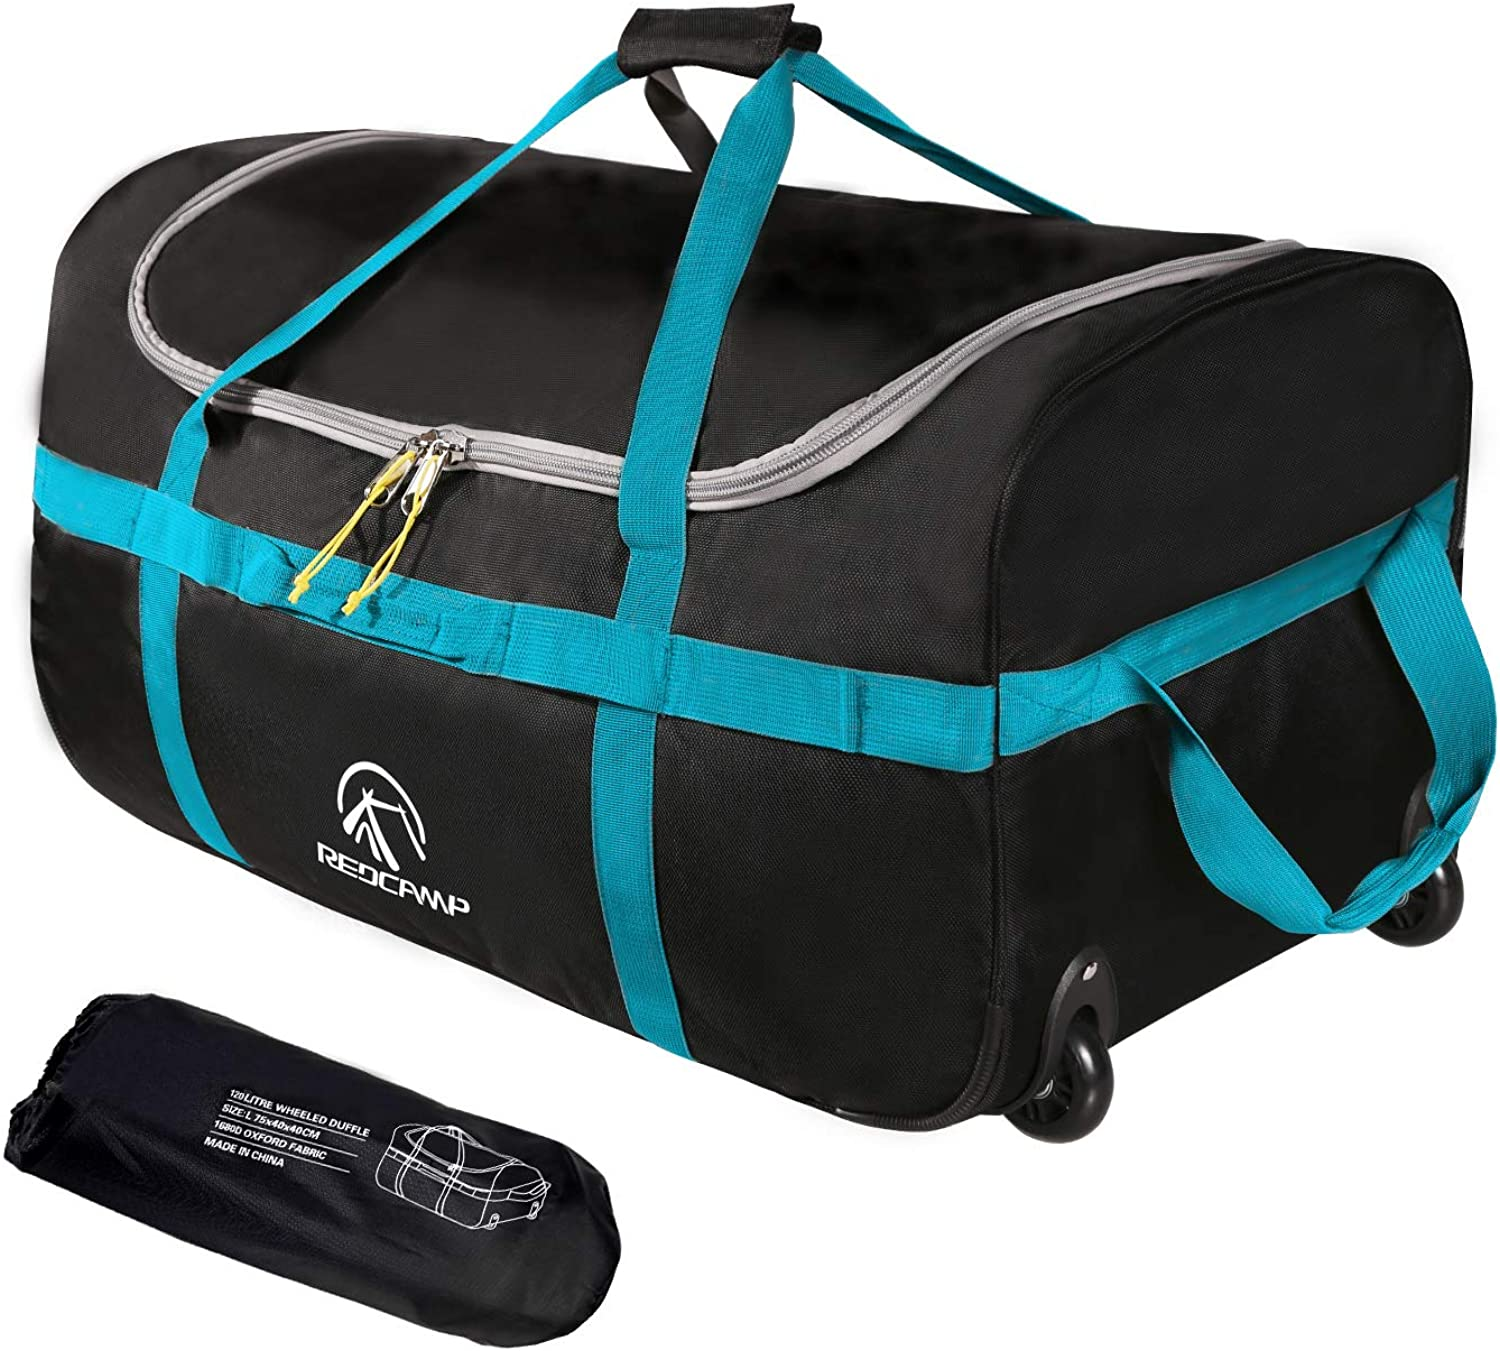 REDCAMP Foldable Duffle Bag with Wheels 85L/120L, 1680D Oxford Collapsible Large Duffel Bag with Rollers for Camping Travel Gear, Black